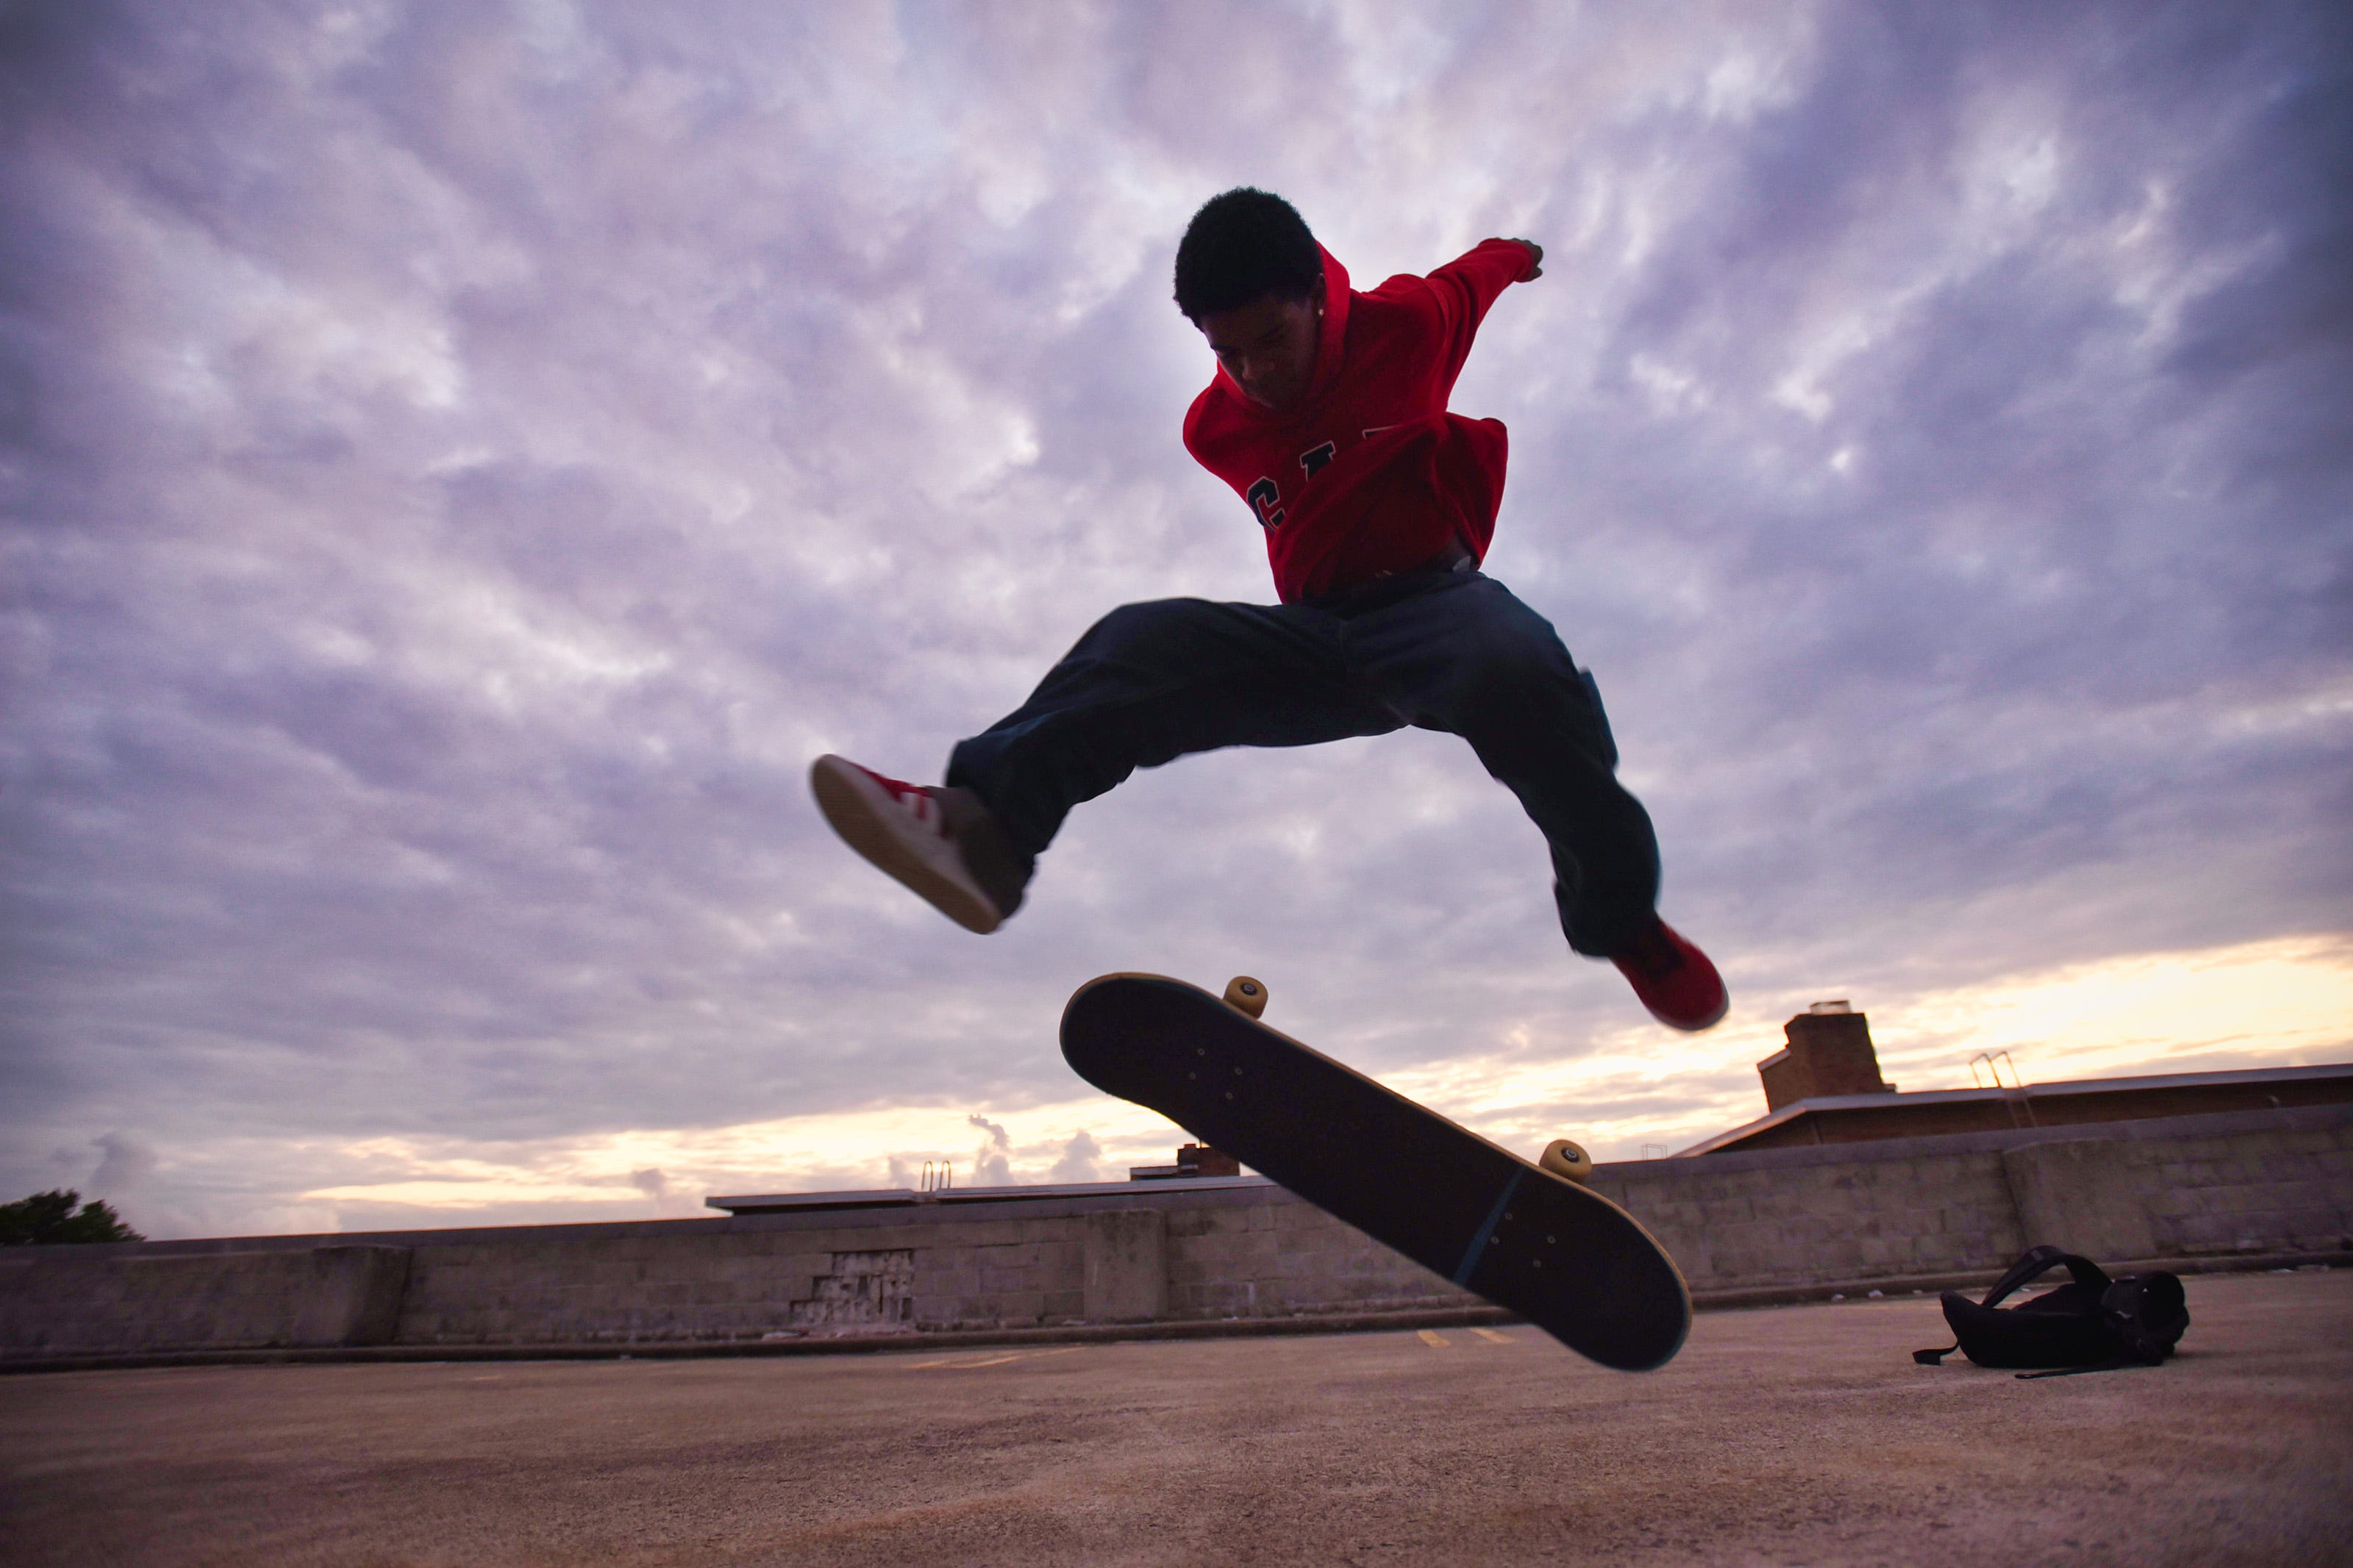 Zachary Hampton, 16, of Hackensack, practices skateboarding on the top roof of a parking garage as the sun sets in Hackensack on 08/04/21.